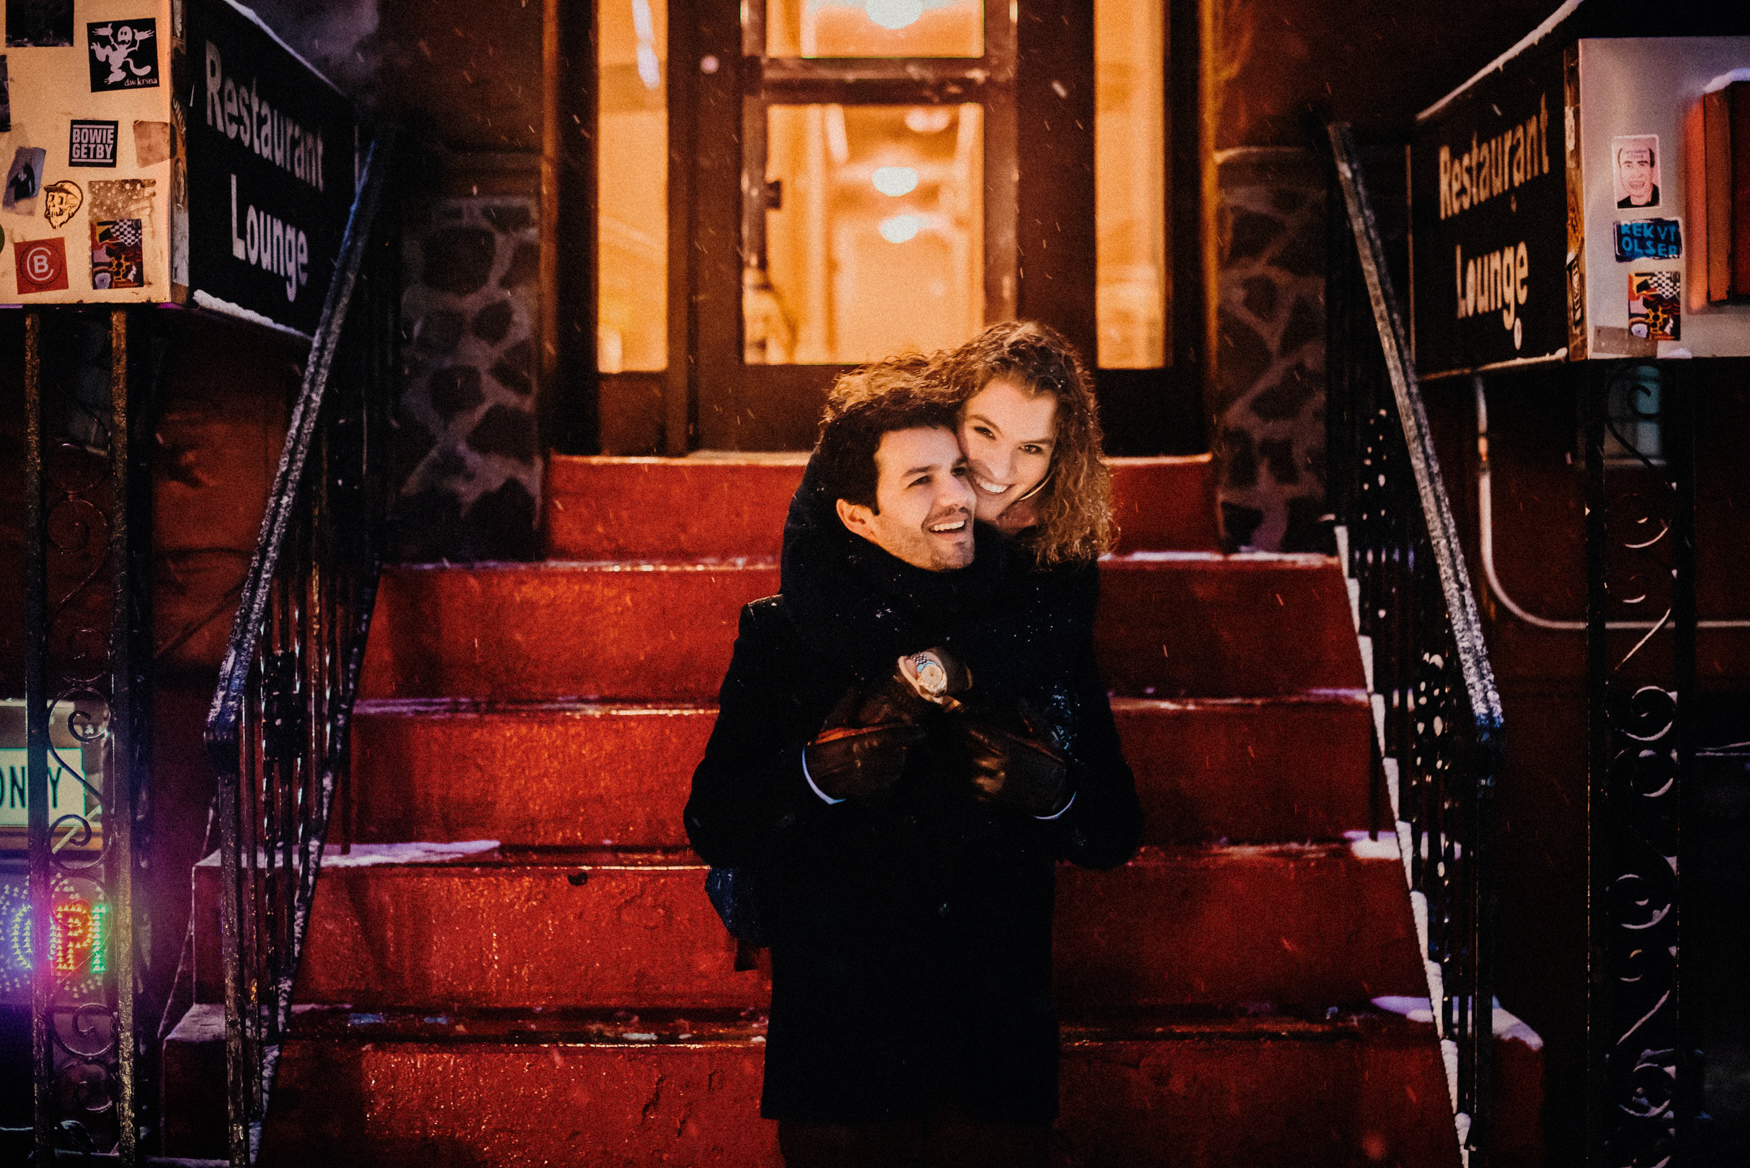 nyc winter snowy manthattan engagement session 026.jpg